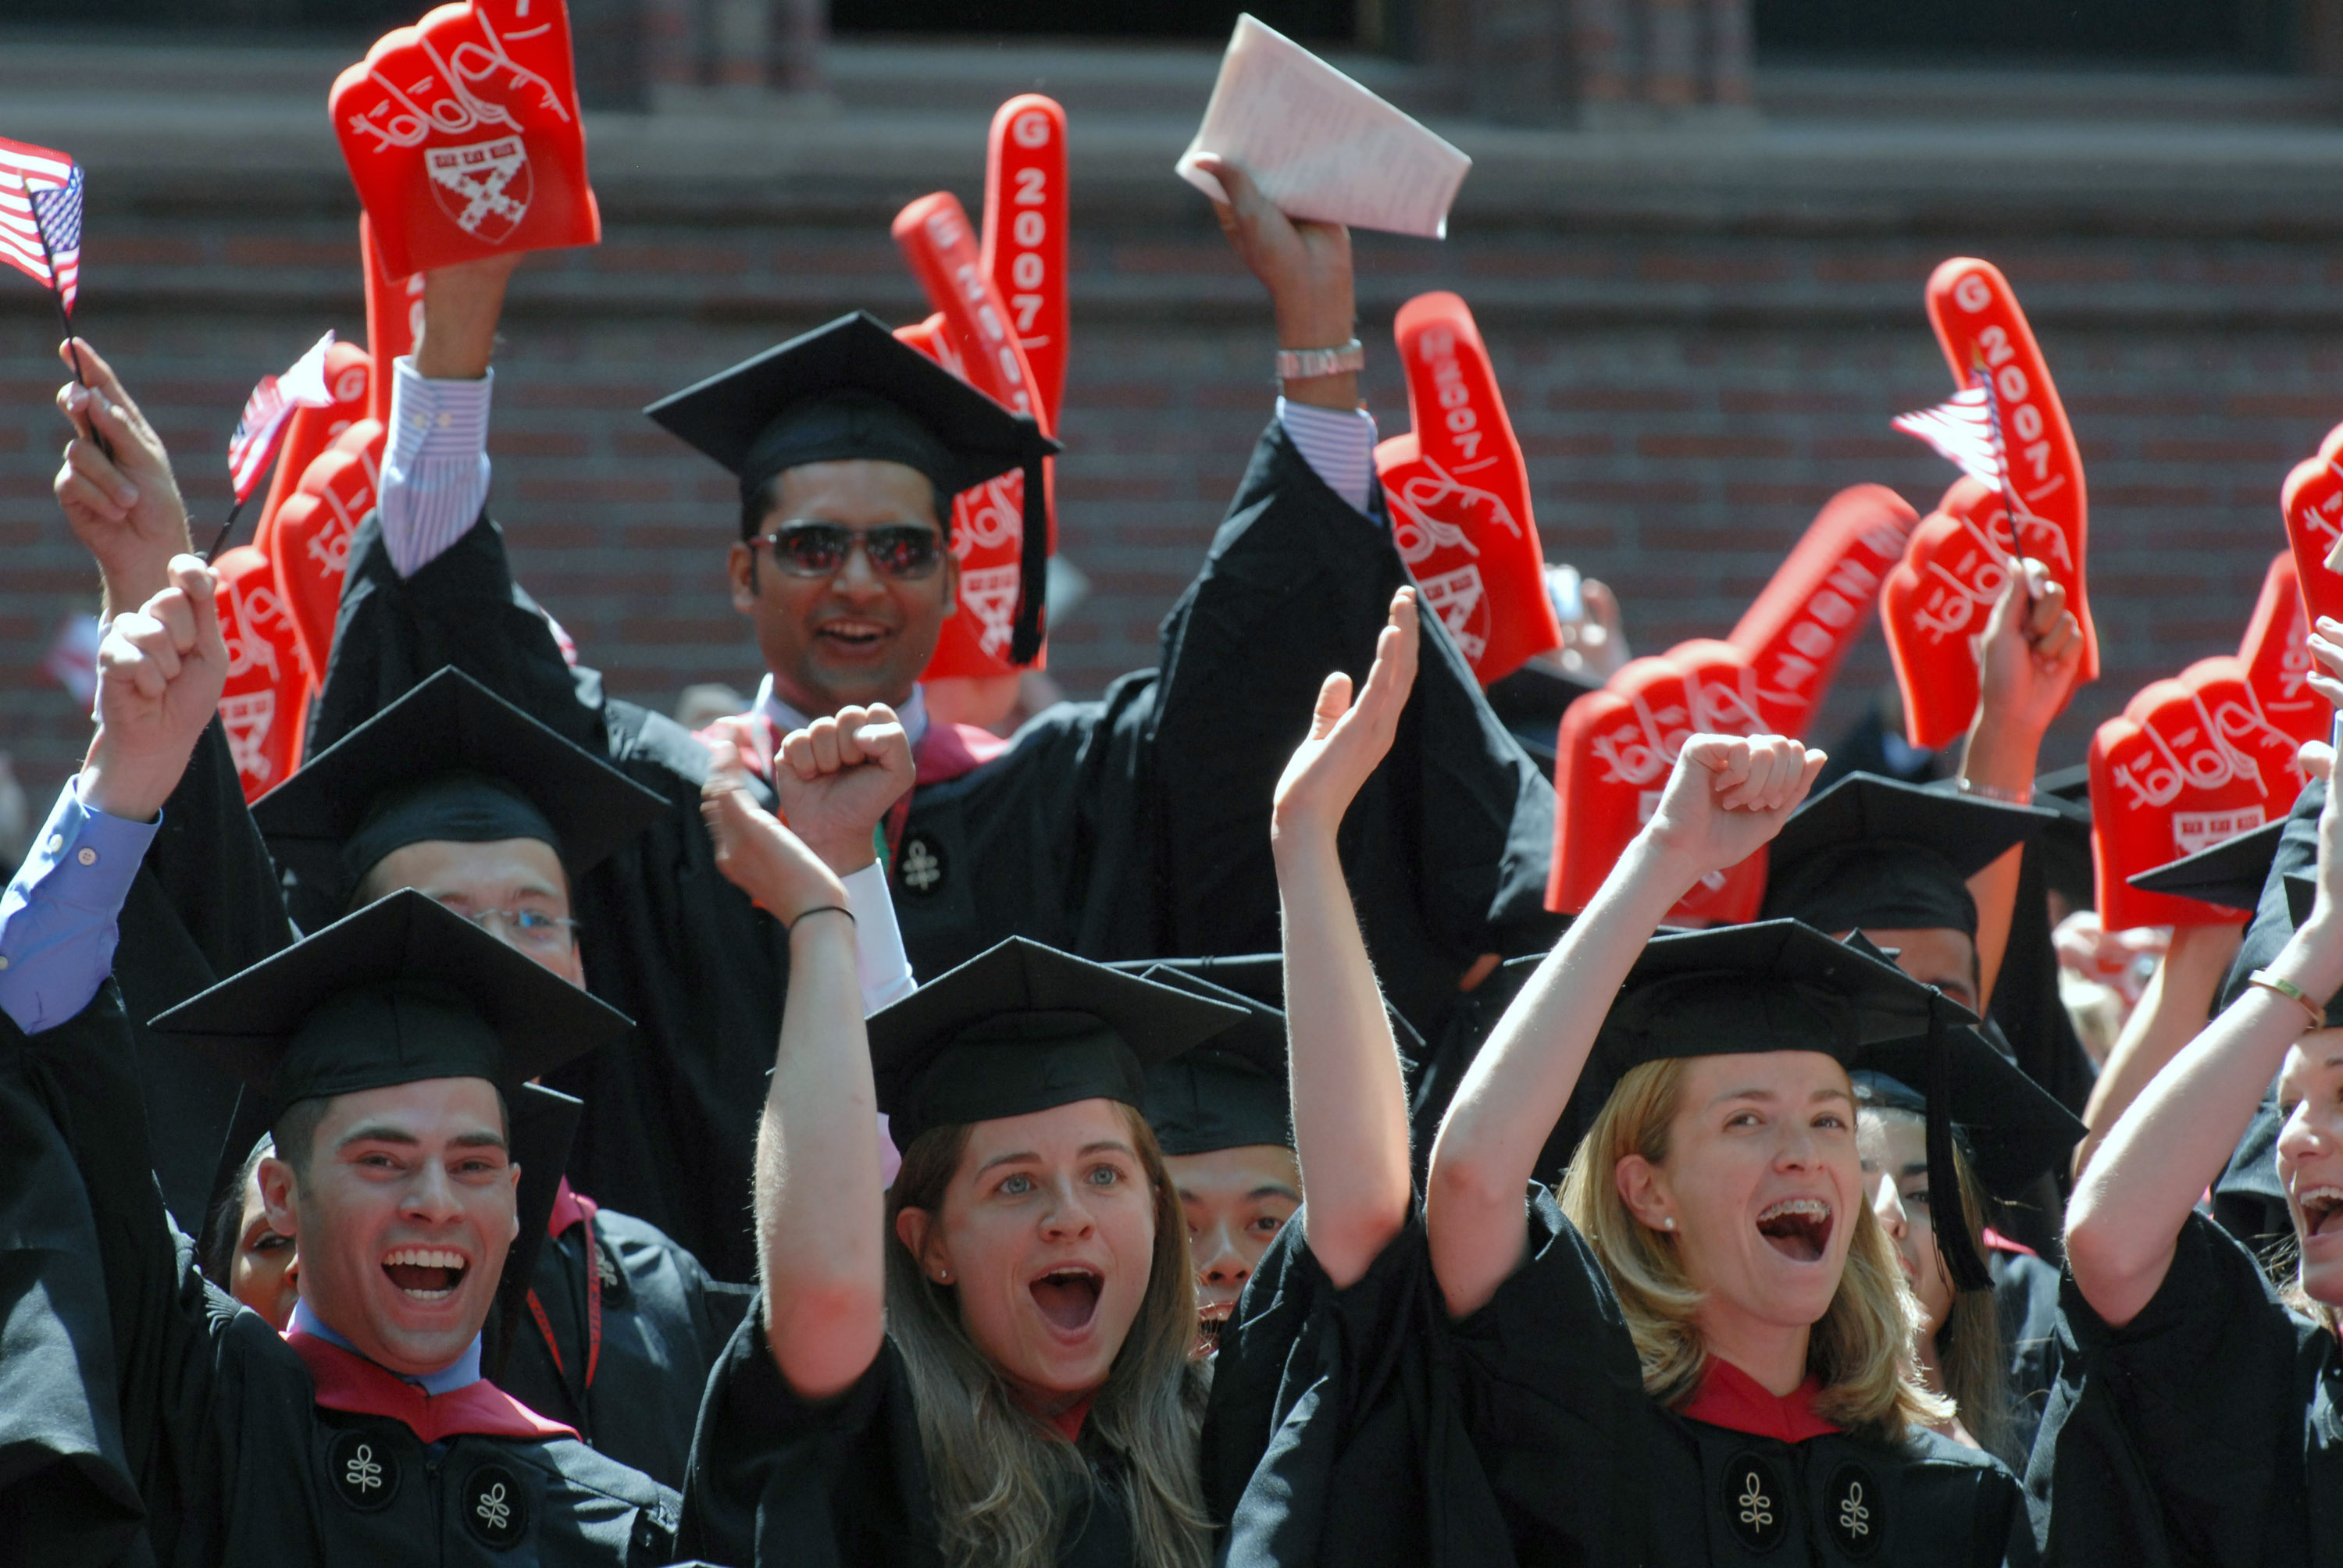 MBA Colleges Produce Better Graduates